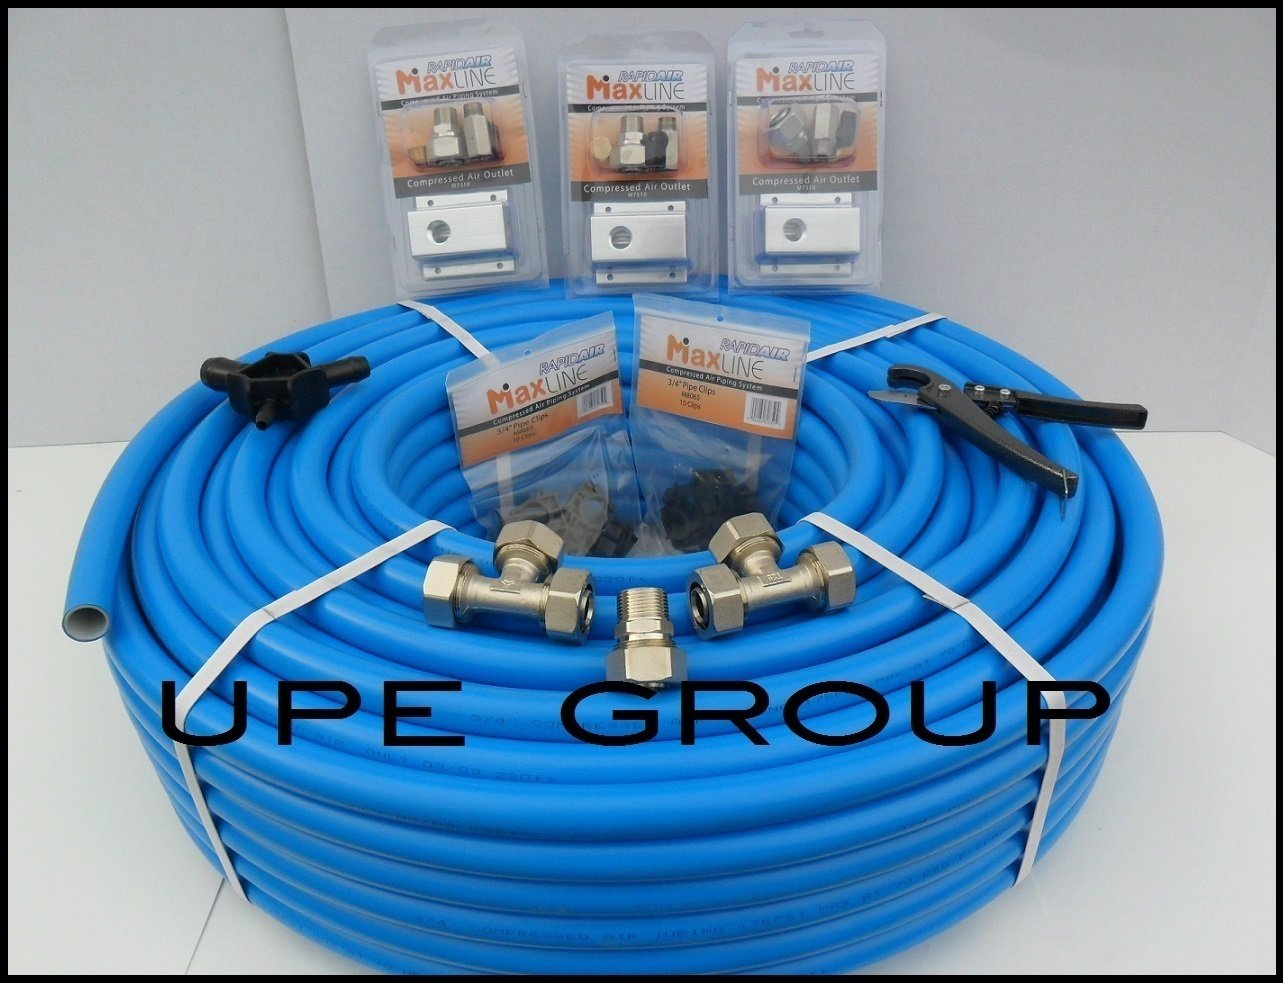 MaxLine COMPRESSED AIR TUBING piping system Master Kit 3/4'' pipe x 300 FT M7580 workshop / garage complete airline system